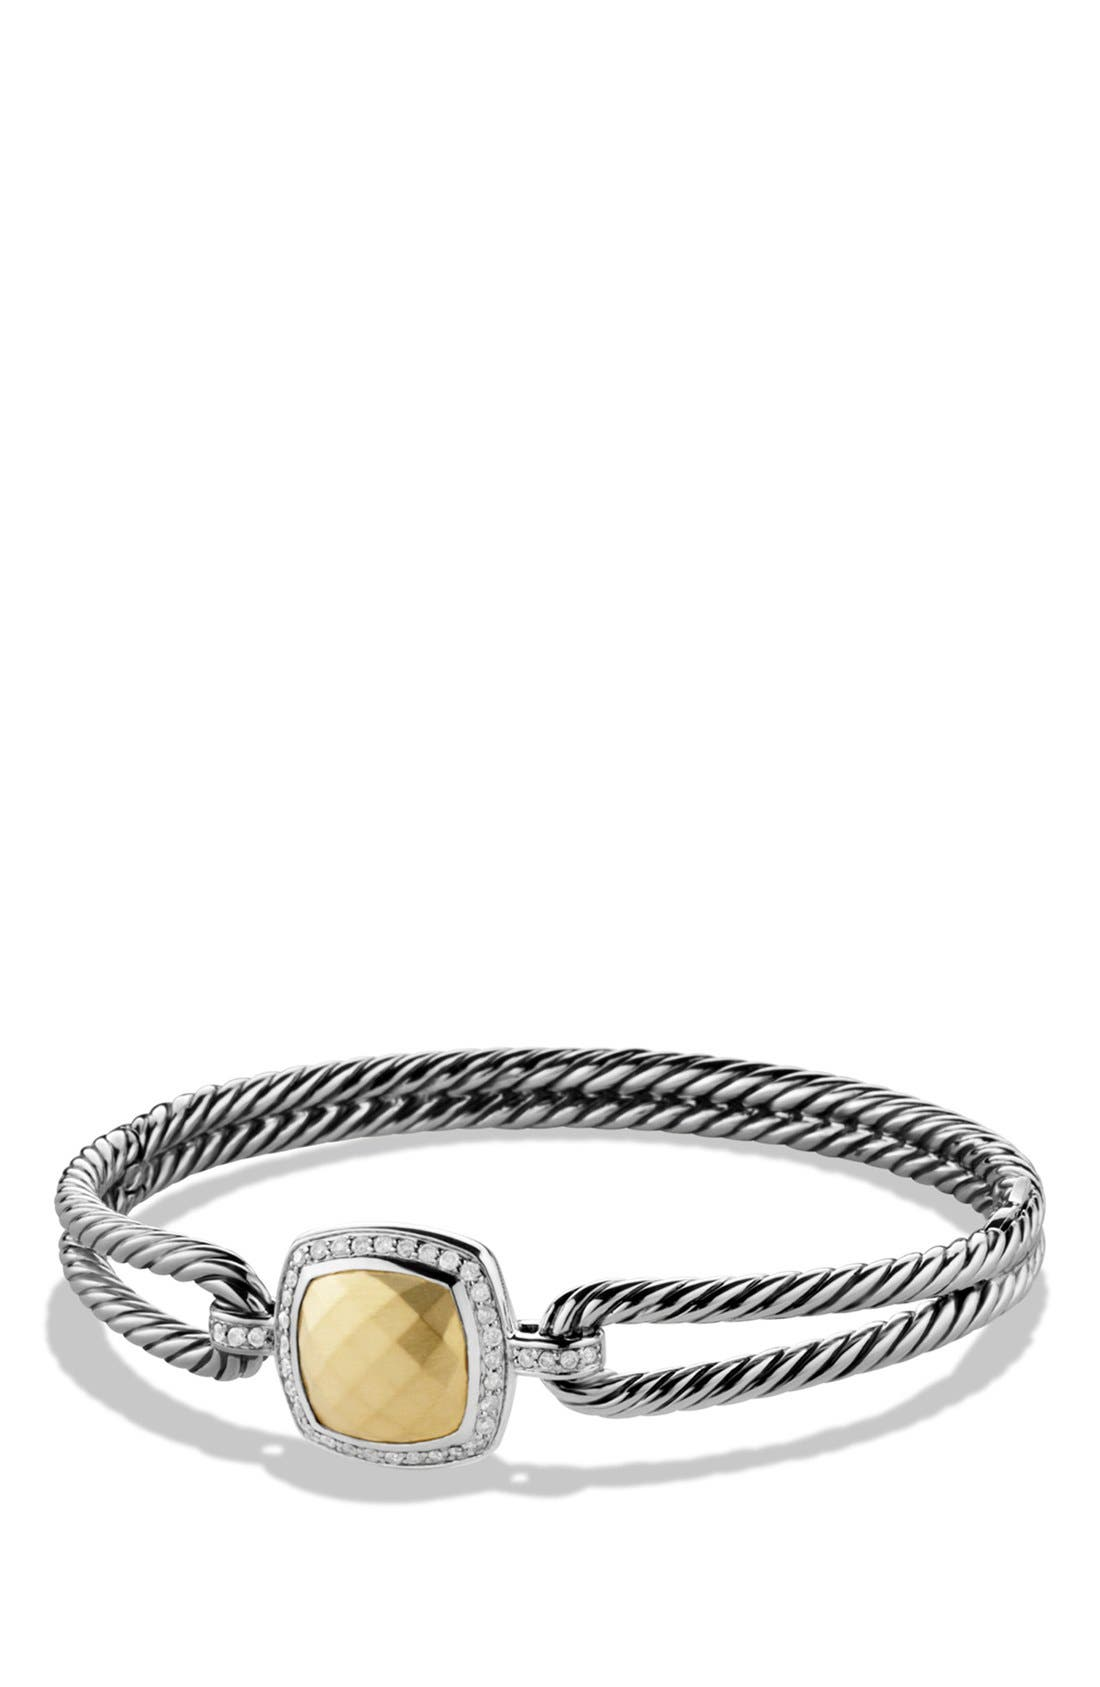 'Albion' Bracelet with Diamonds and Gold,                             Main thumbnail 1, color,                             Gold Dome